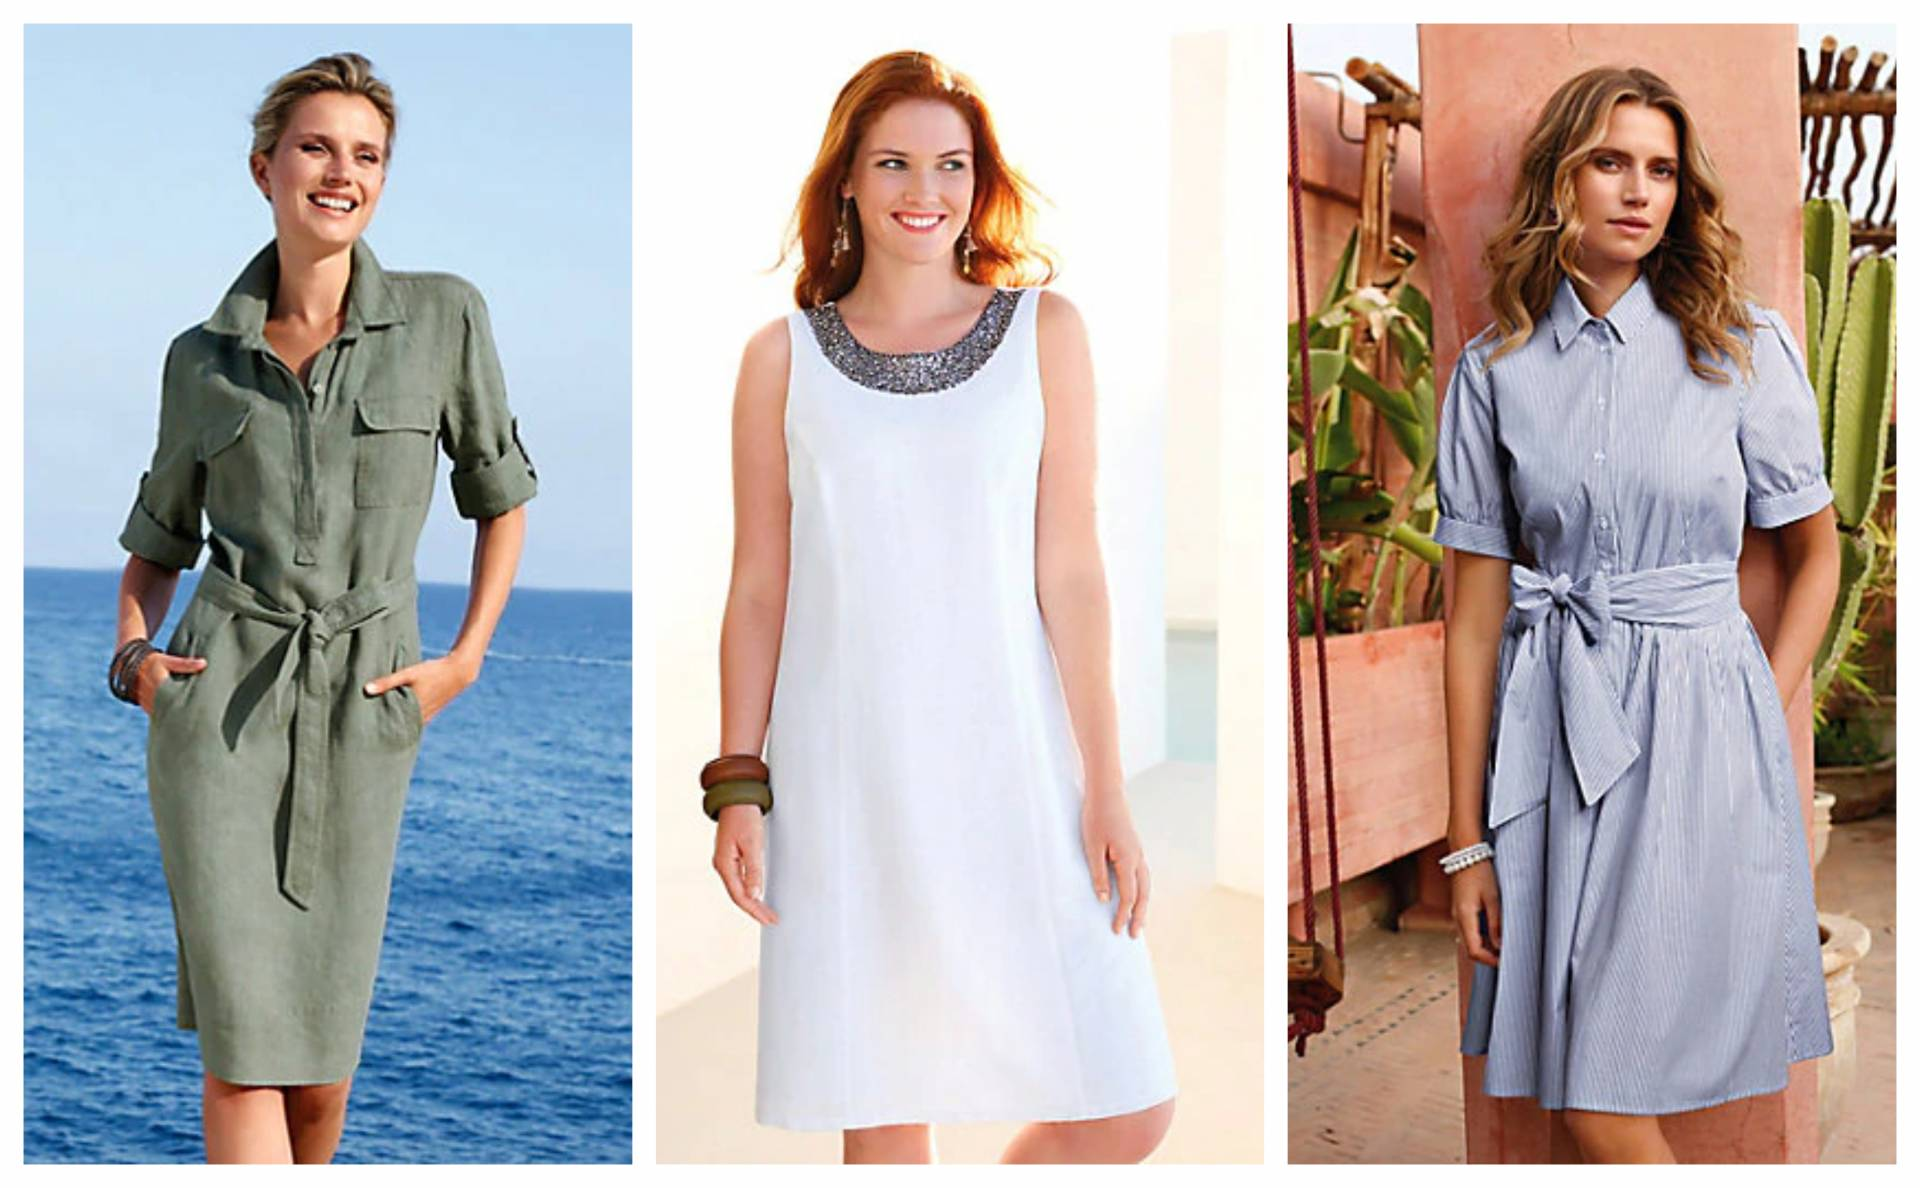 Stylish Summer dresses to keep you cool in the heat